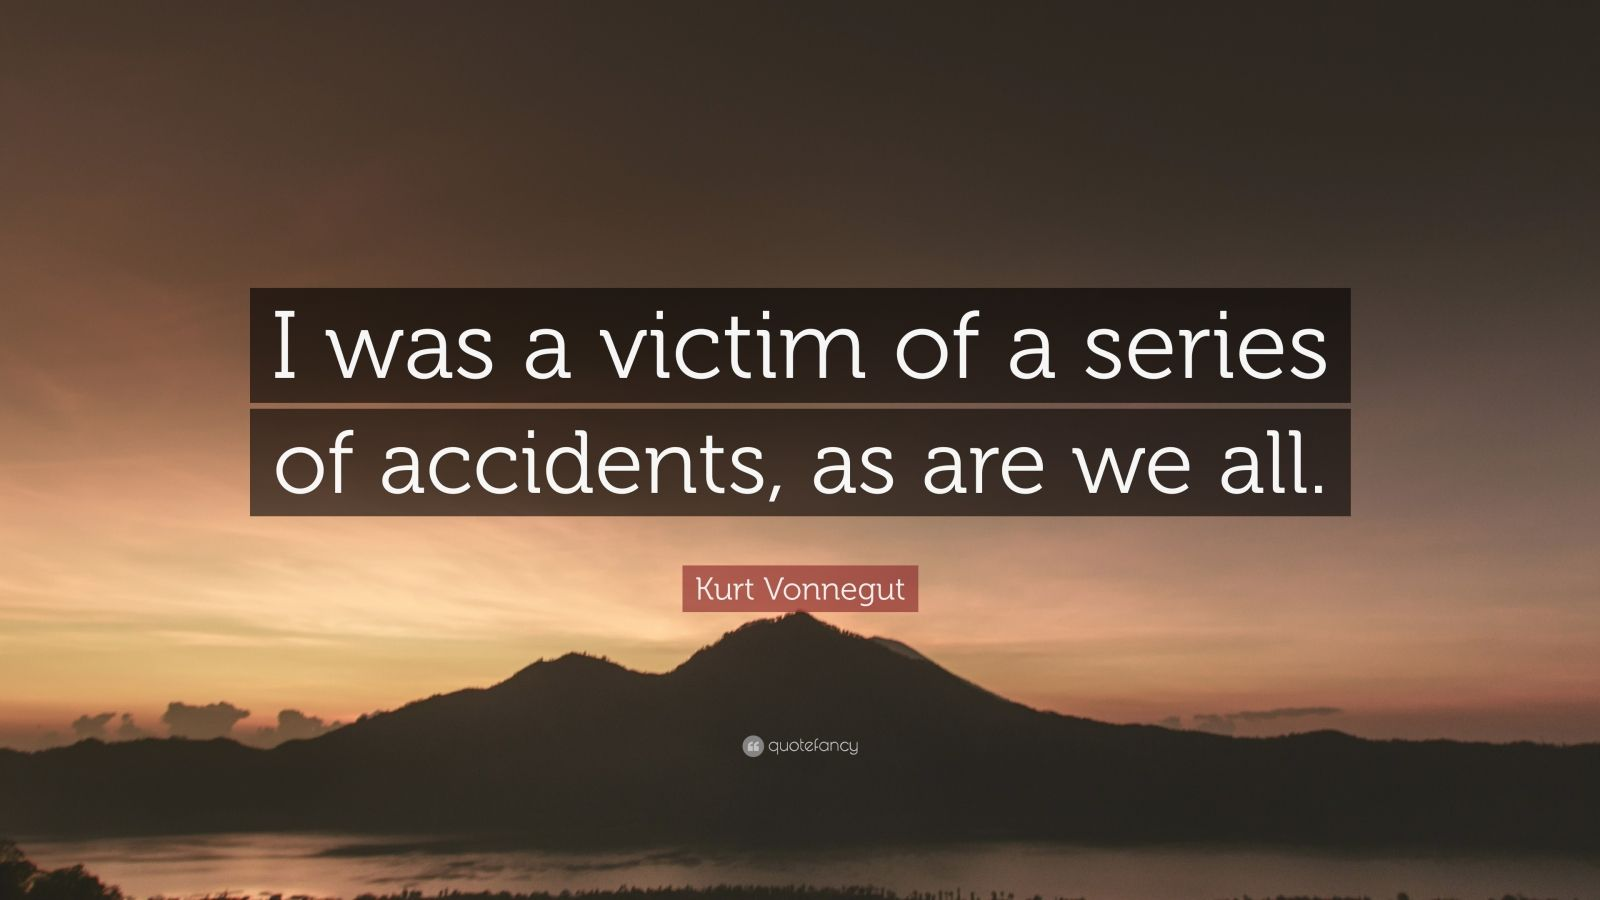 """Kurt Vonnegut Quote: """"I was a victim of a series of accidents, as are we all."""""""